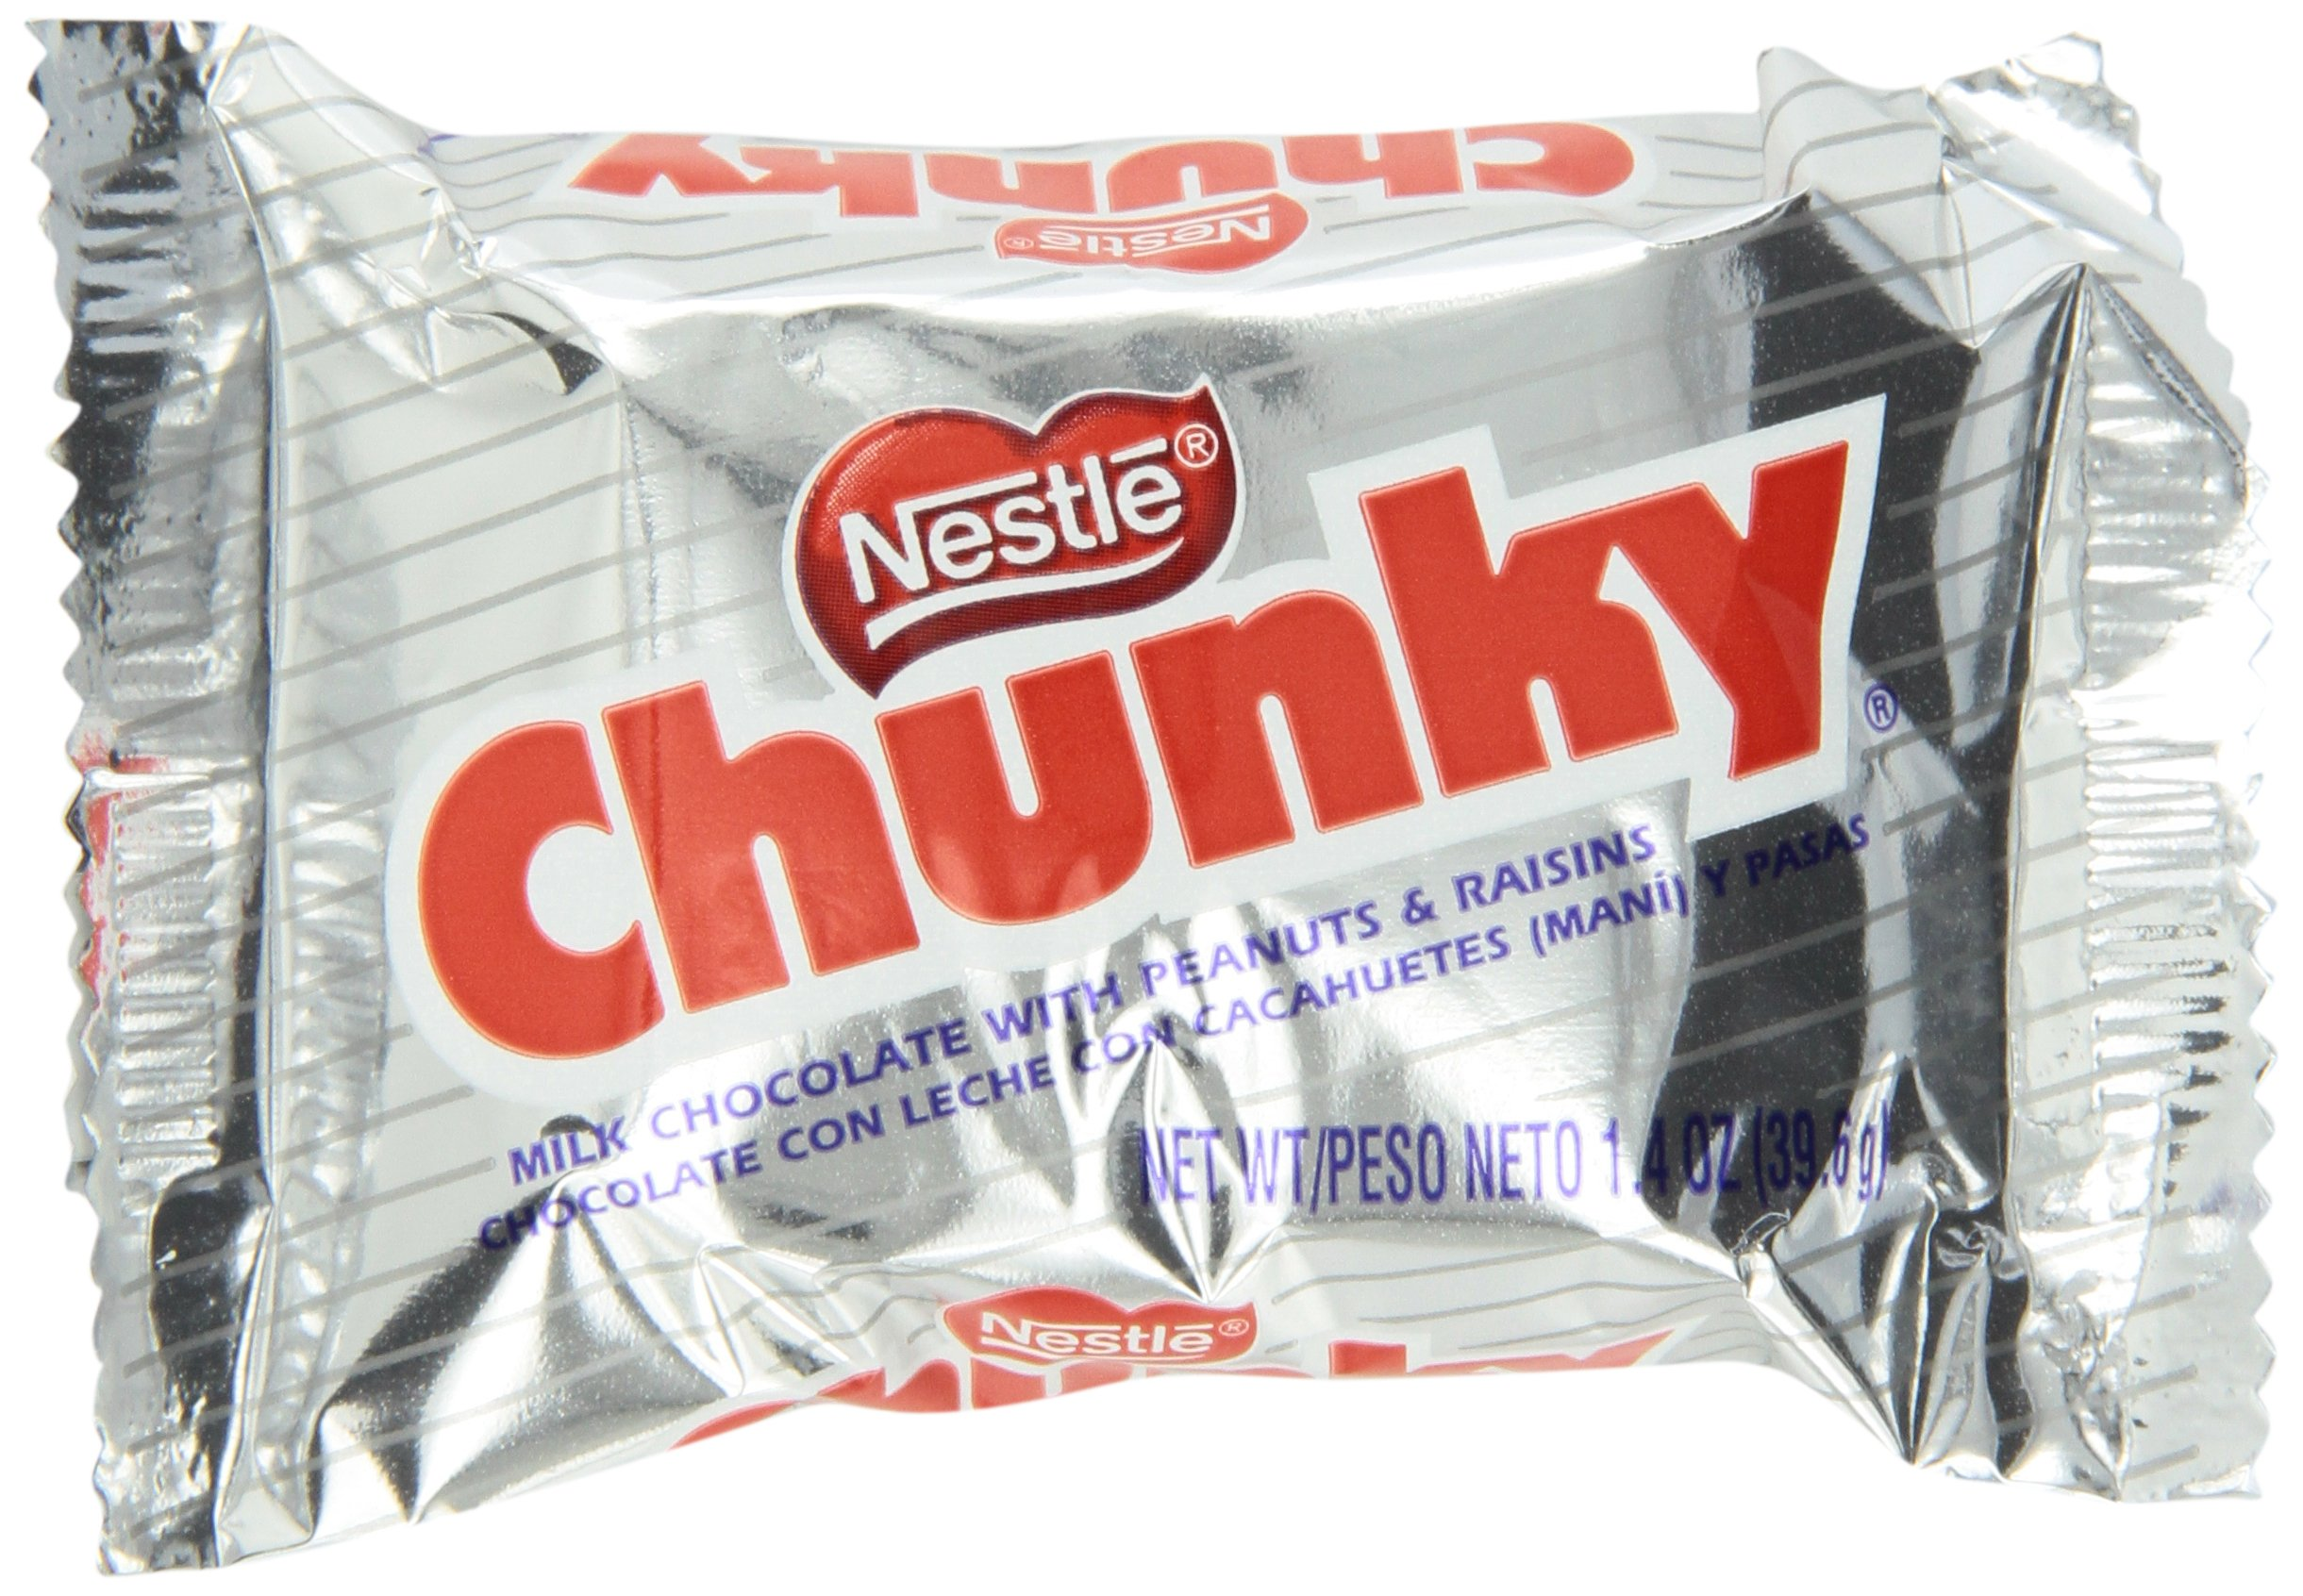 Nestle Chunky Chocolate Single Candy Bars, 1.4 Ounce (Pack of 24) by Chunky (Image #1)